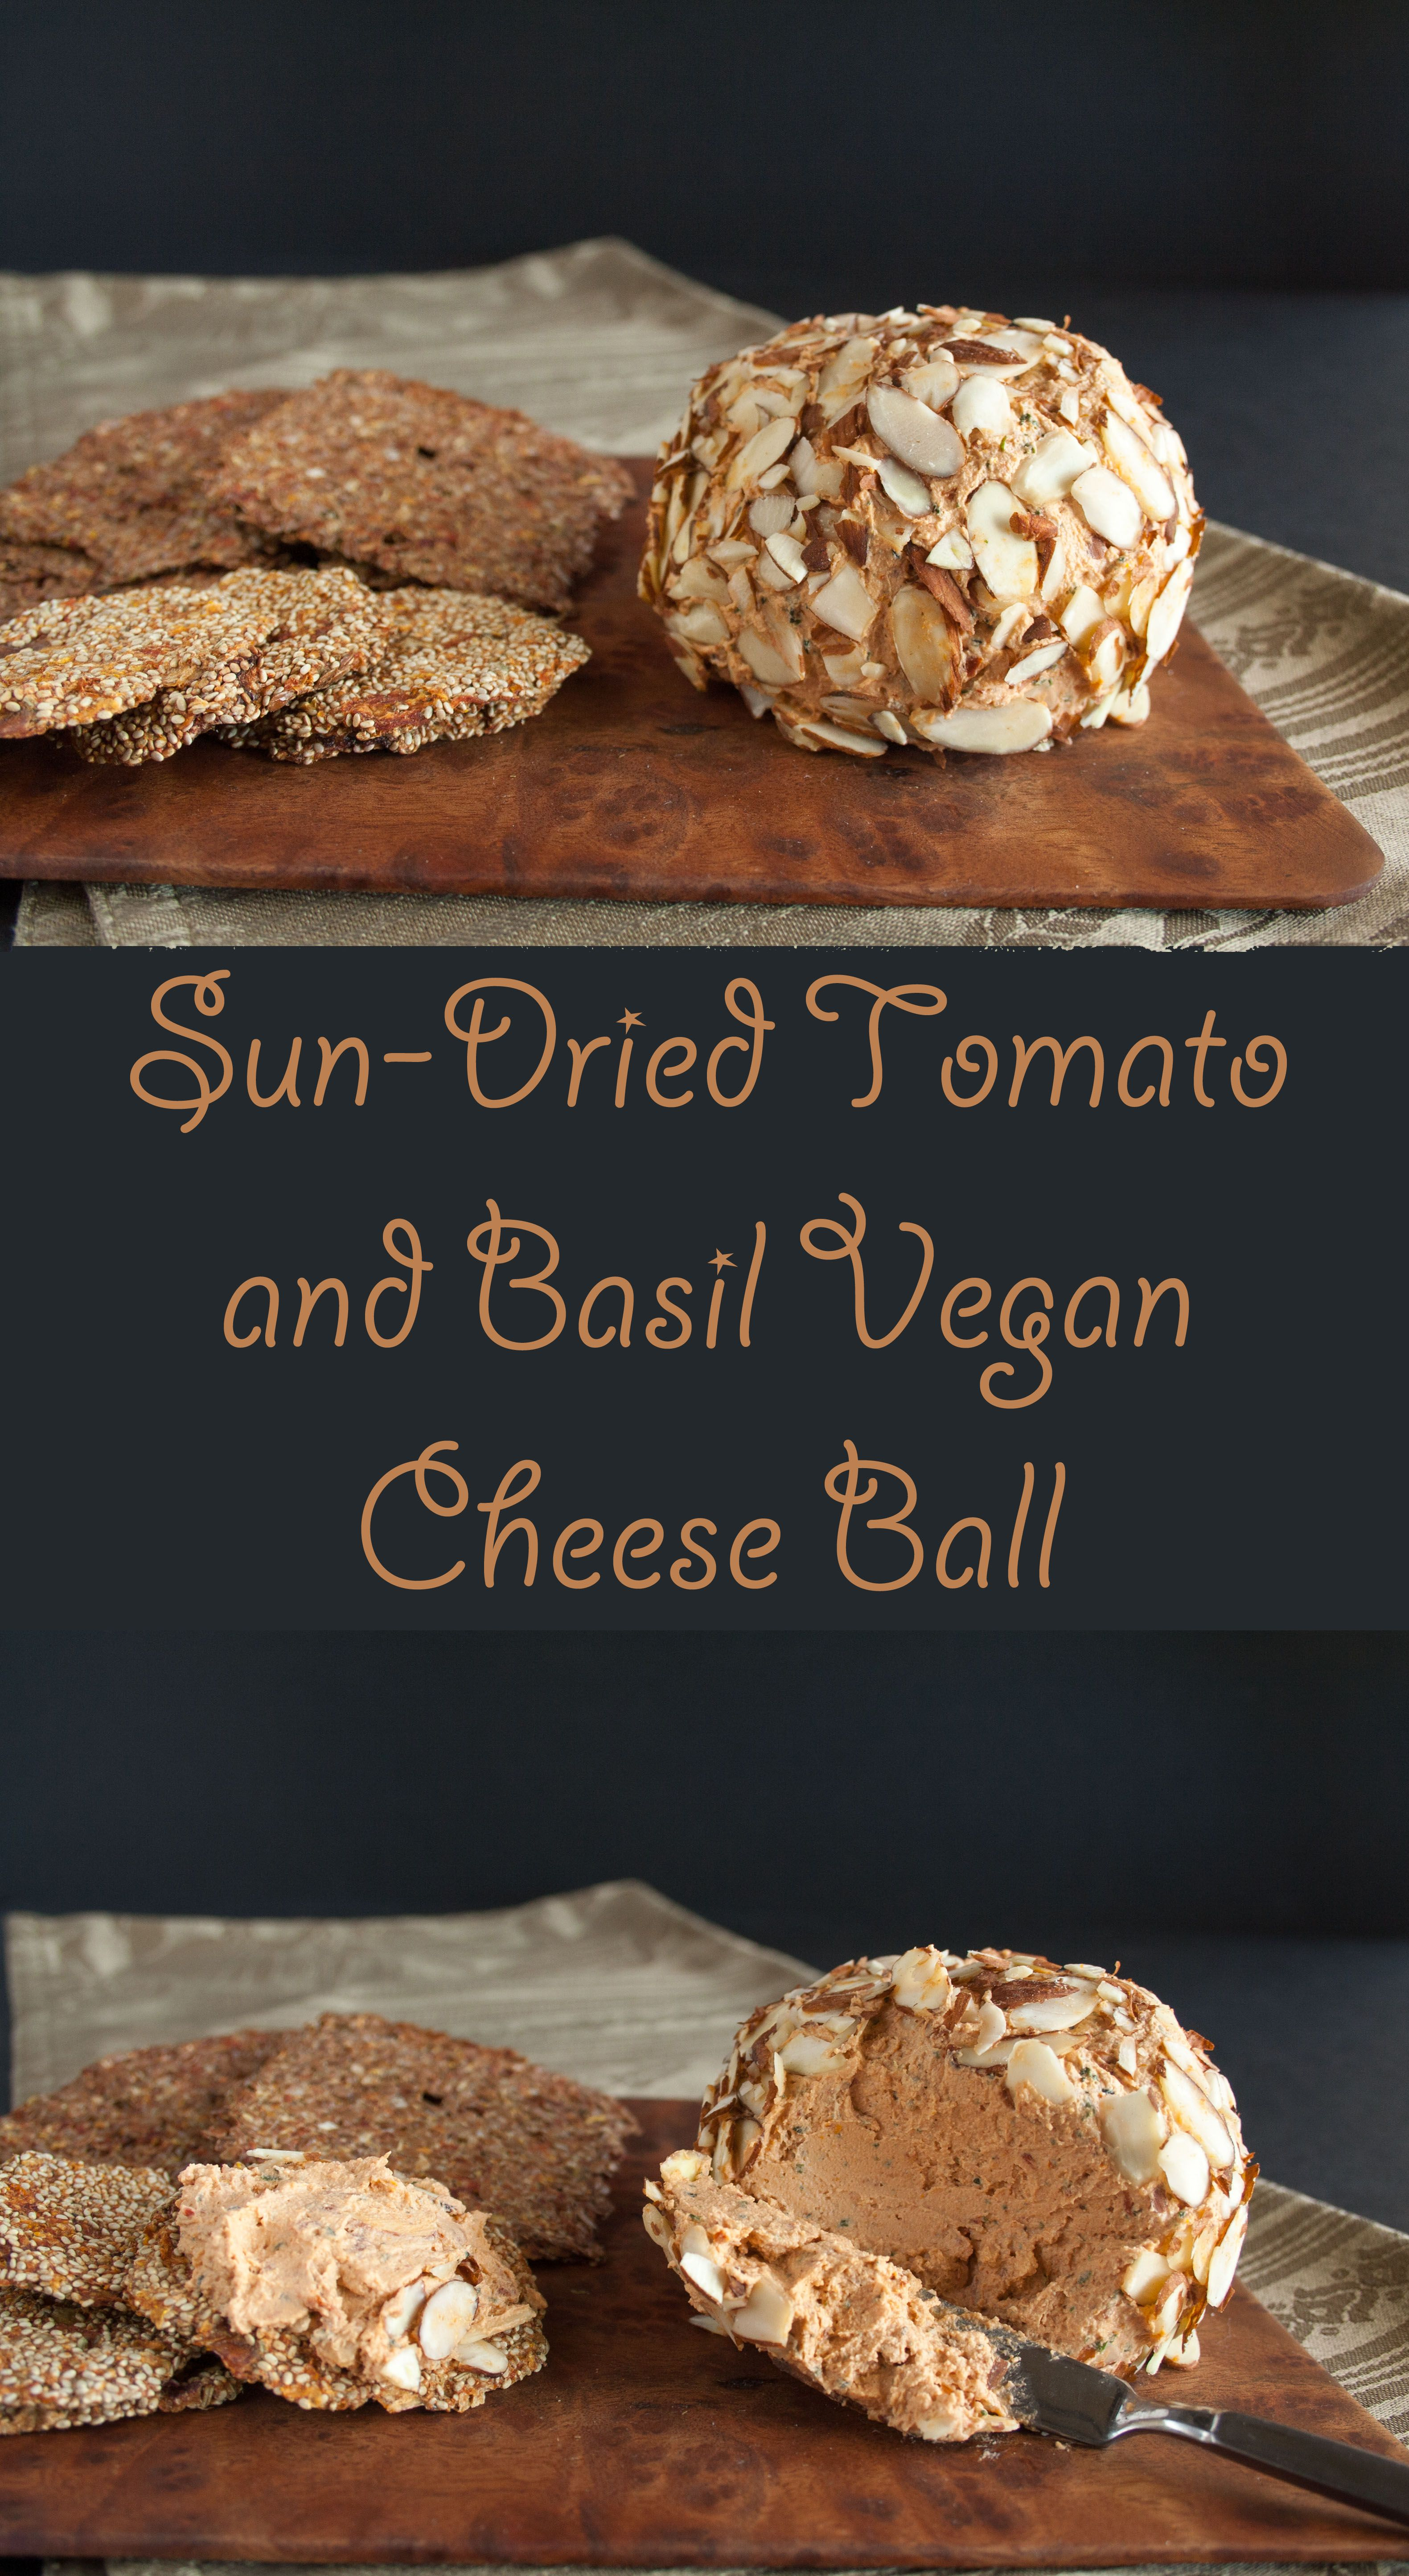 Sun Dried Tomato And Basil Vegan Cheese Ball Gluten Free This Vegan Cheese Ball Has Only Five Ingredi Vegan Cheese Cheese Ball Recipes Vegan Cheese Recipes